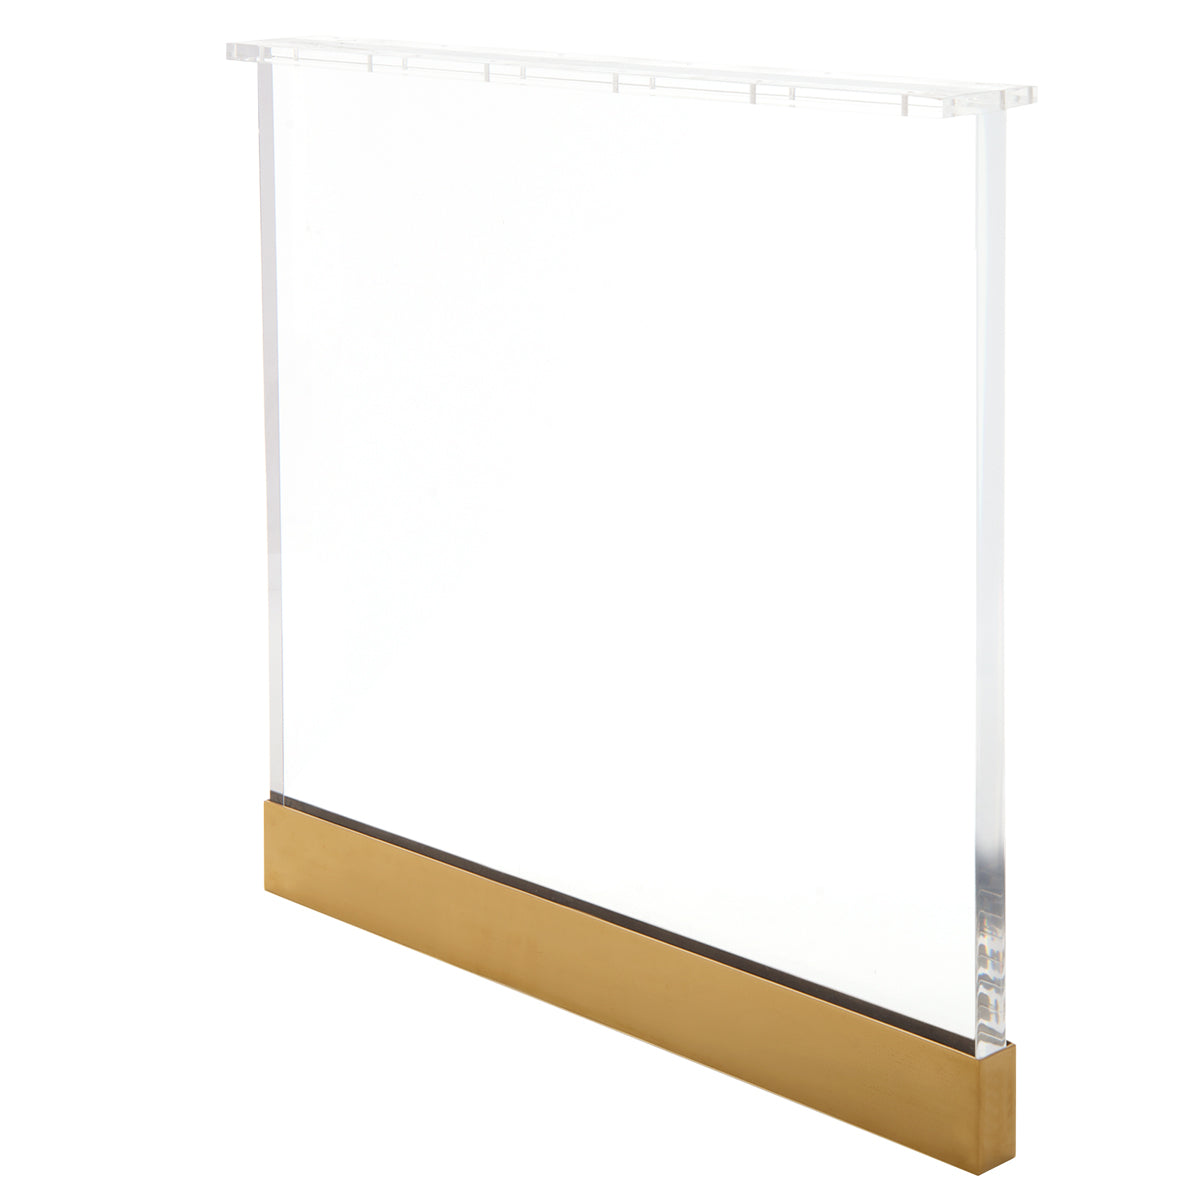 Lucite Plinth Dining Table Legs with Shiny Brass Caps - ModShop1.com